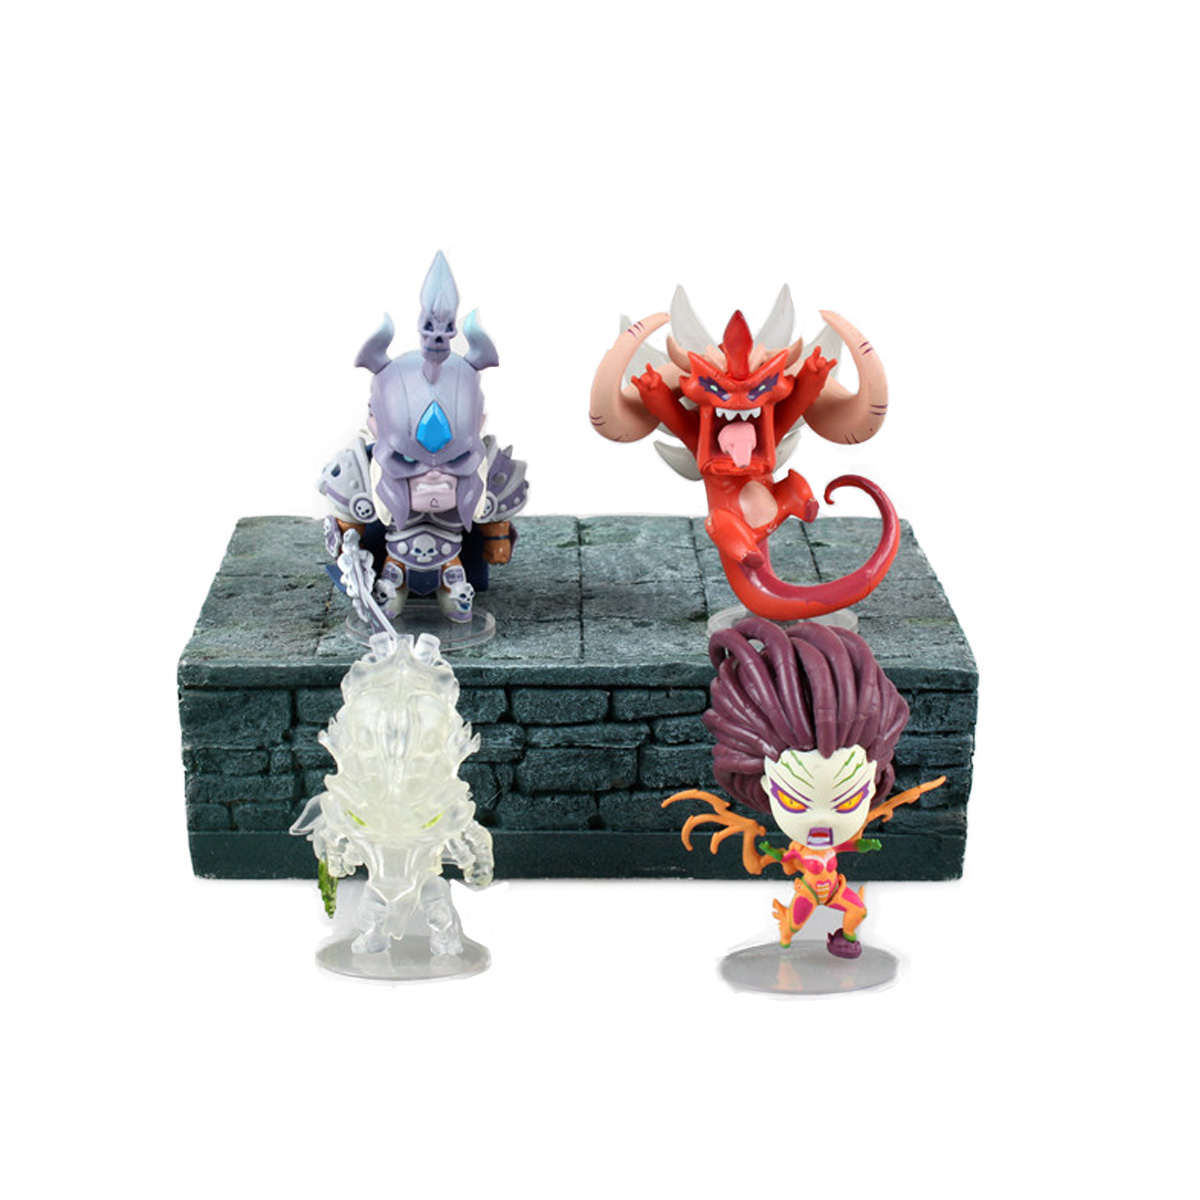 4PCS/SET WOW World of WAR 3 Movie TWO WORLD ONE HOME Game Alliance&Horde My name is MT PVC Action Figures Toys(China (Mainland))